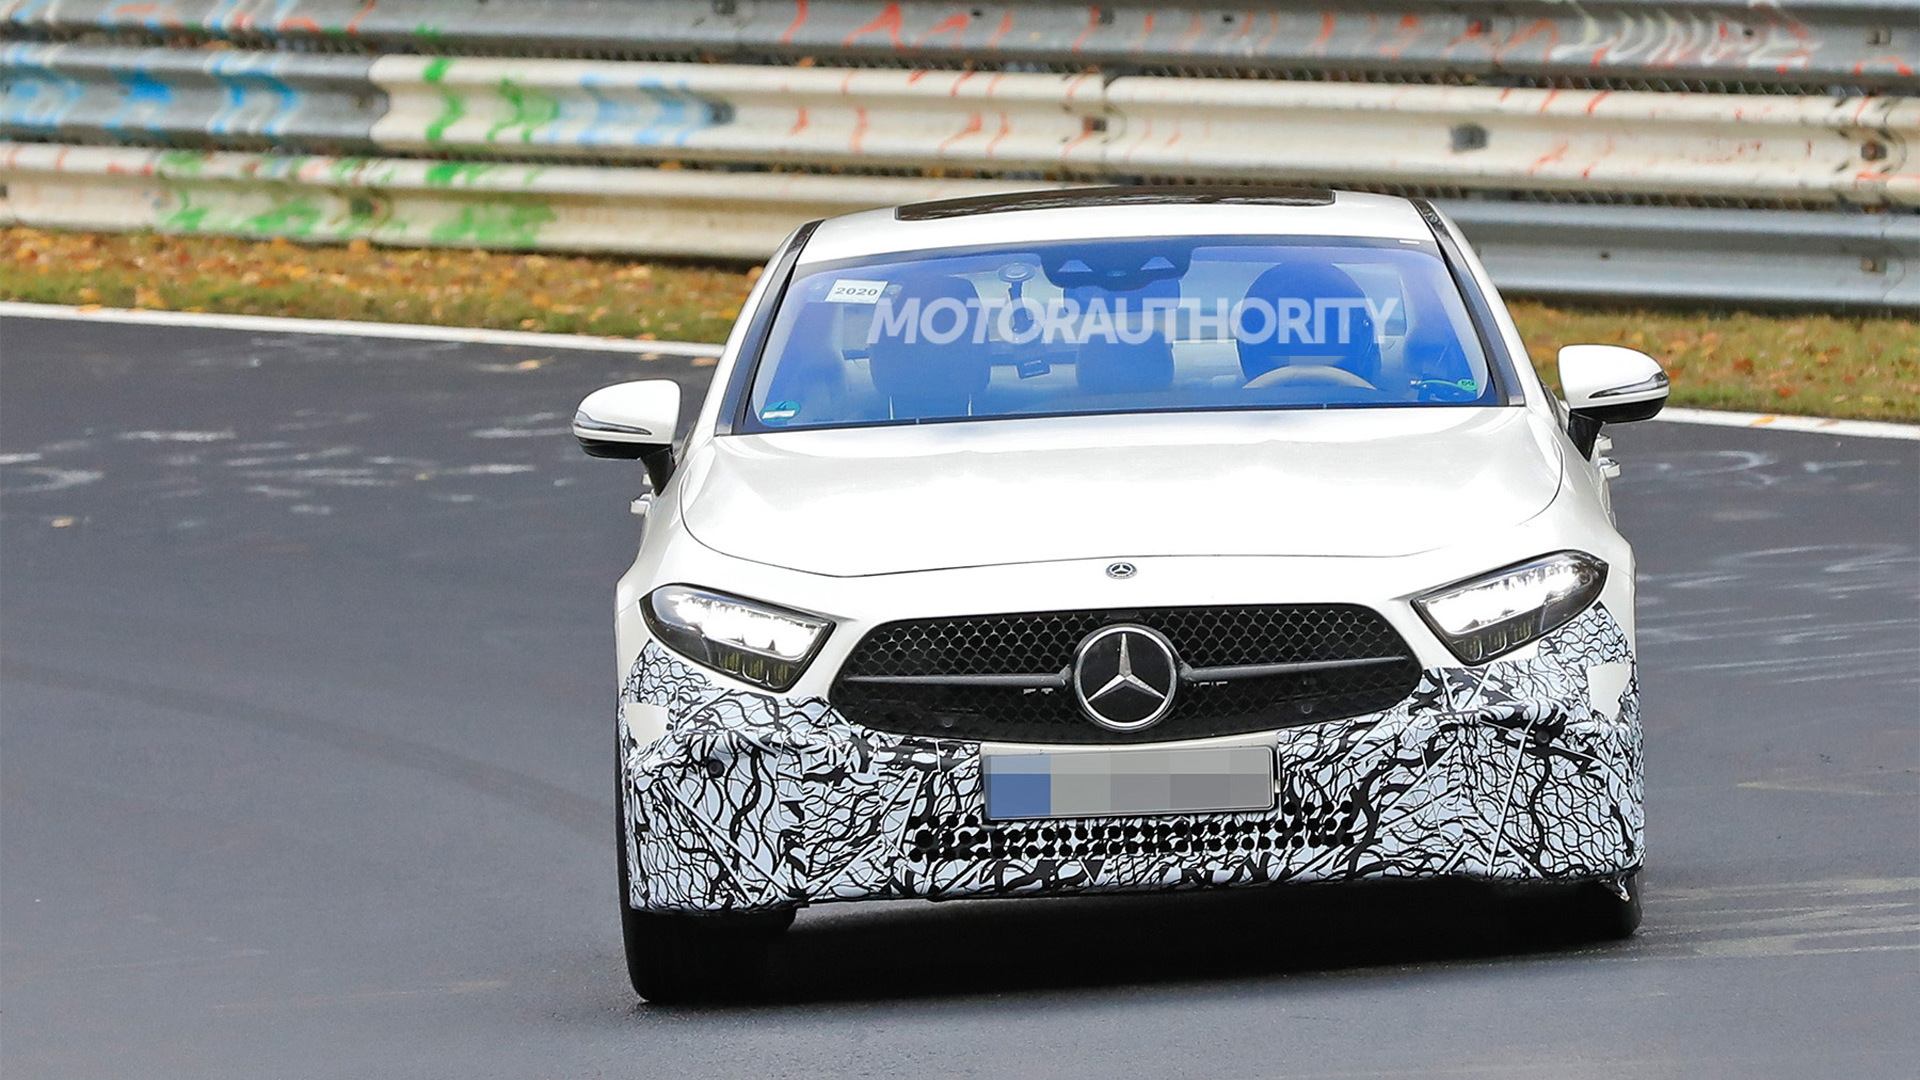 2022 Mercedes-Benz CLS facelift spy shots - Photo credit: S. Baldauf/SB-Medien